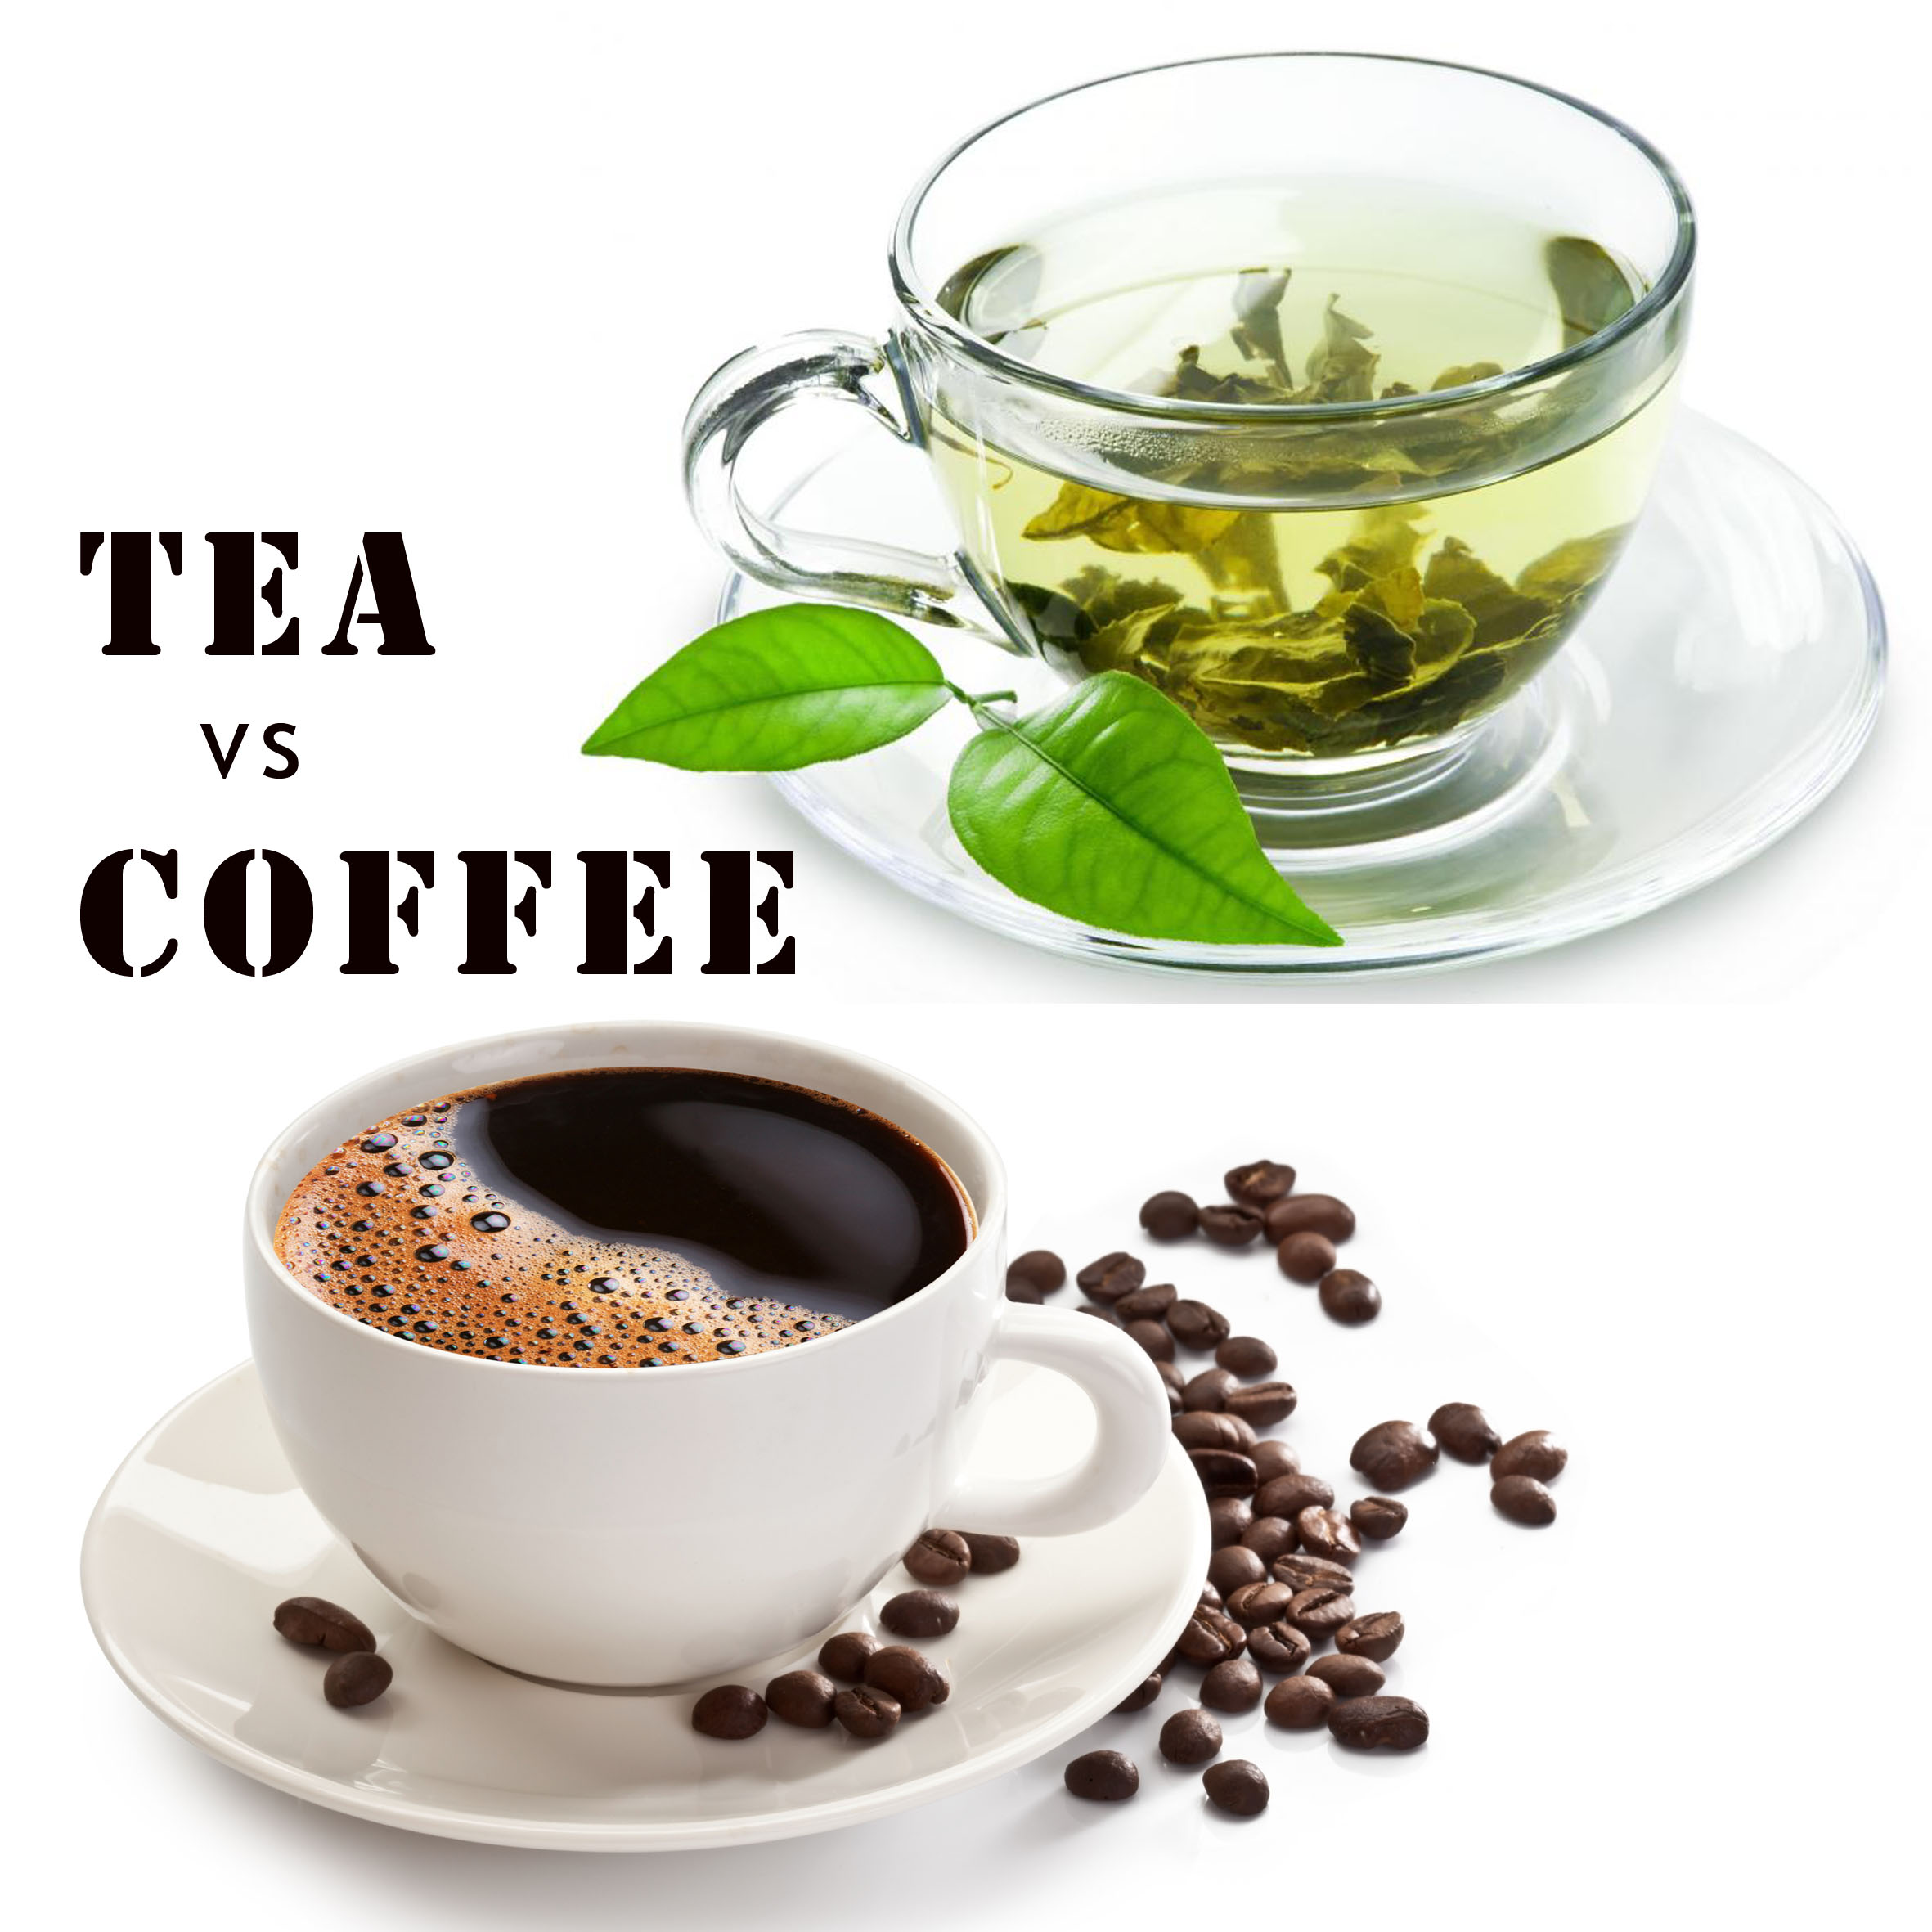 Healthwise : Tea is better than Coffee